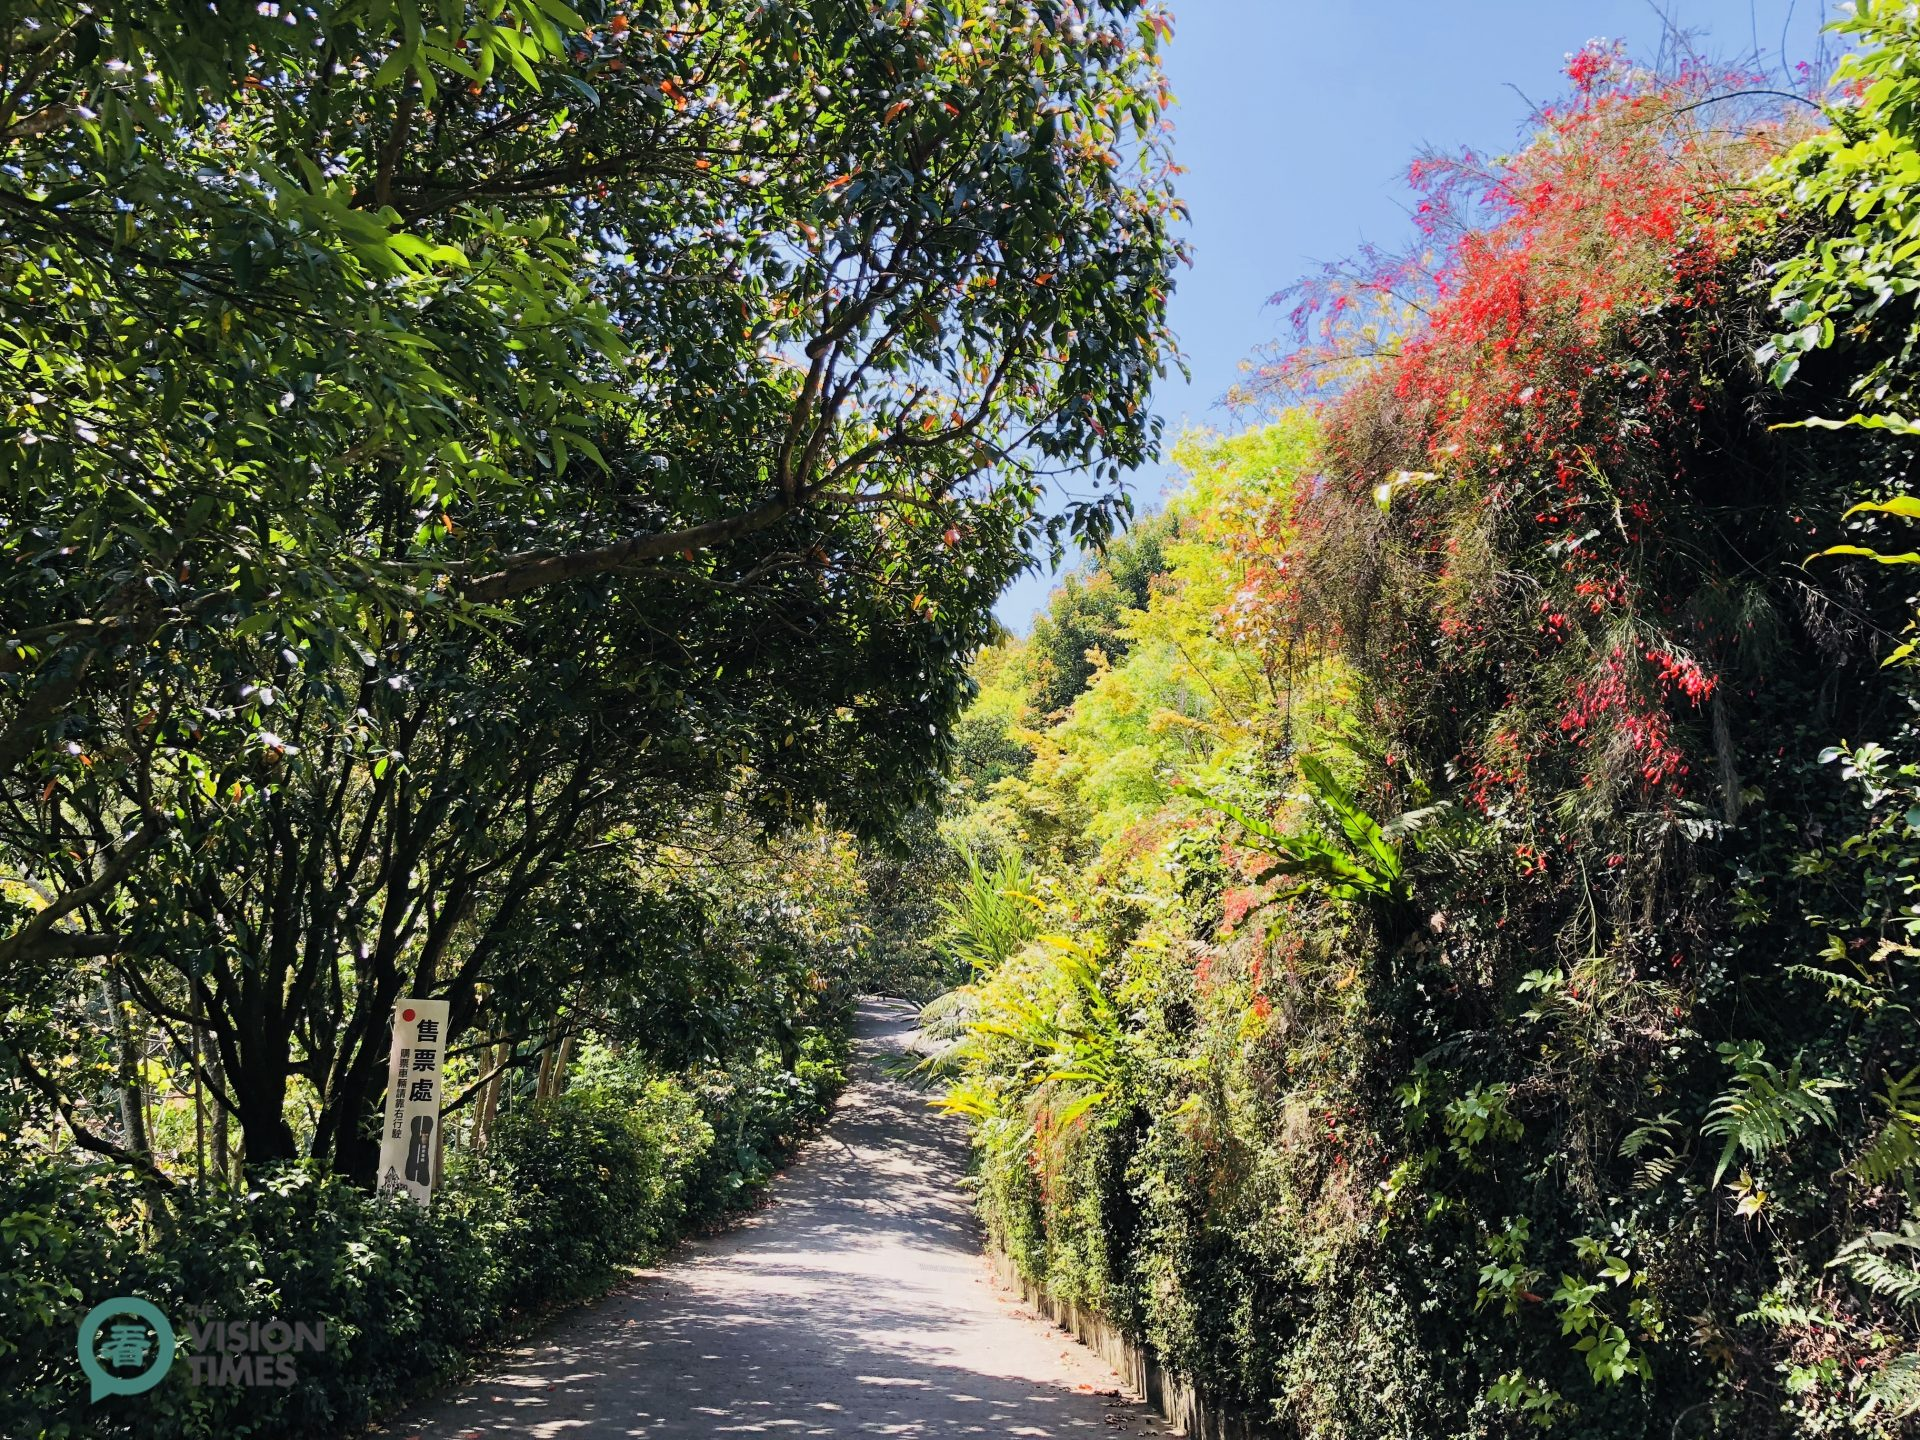 A trail leading to the entrance of Chateau in the Air. (Image: Billy Shyu / Vision Times)